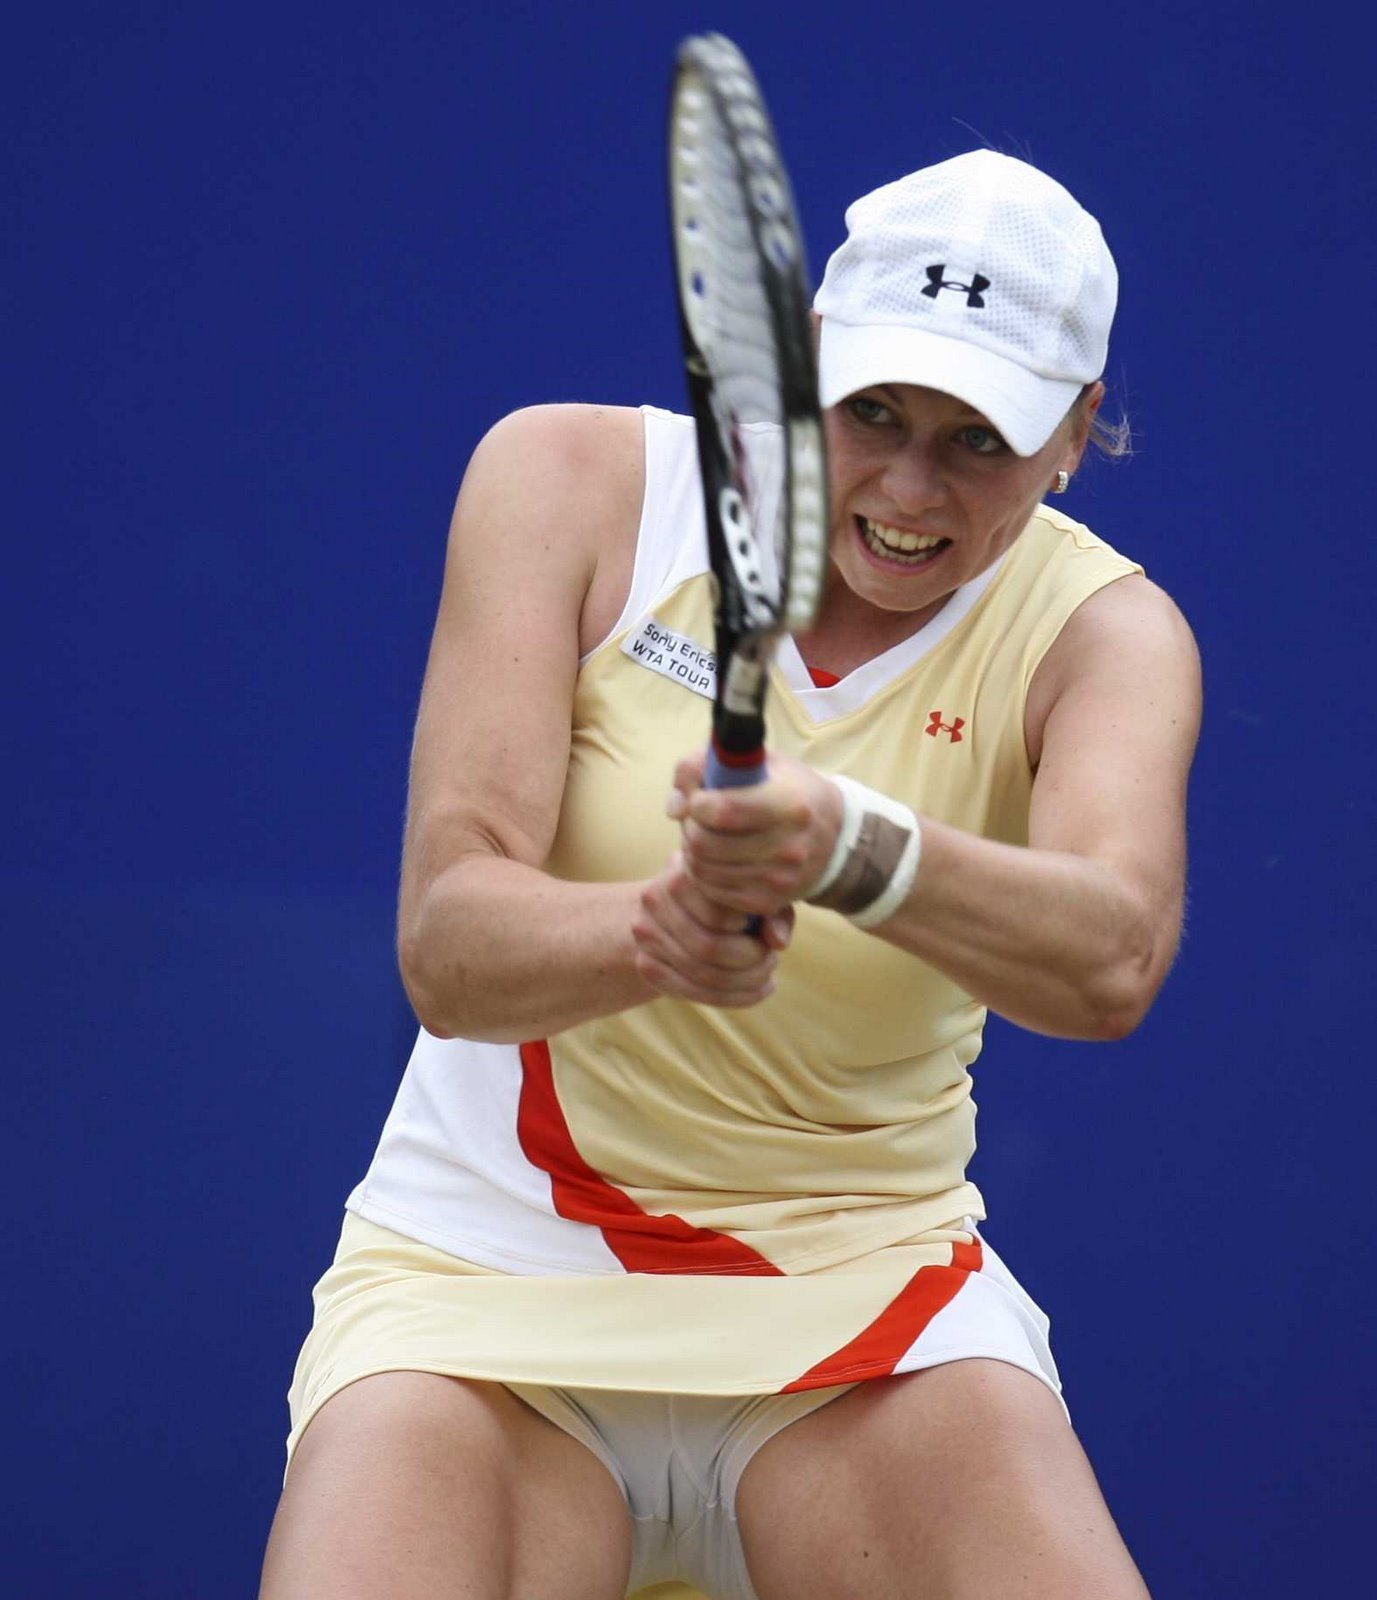 Tennis Zvonareva crotch